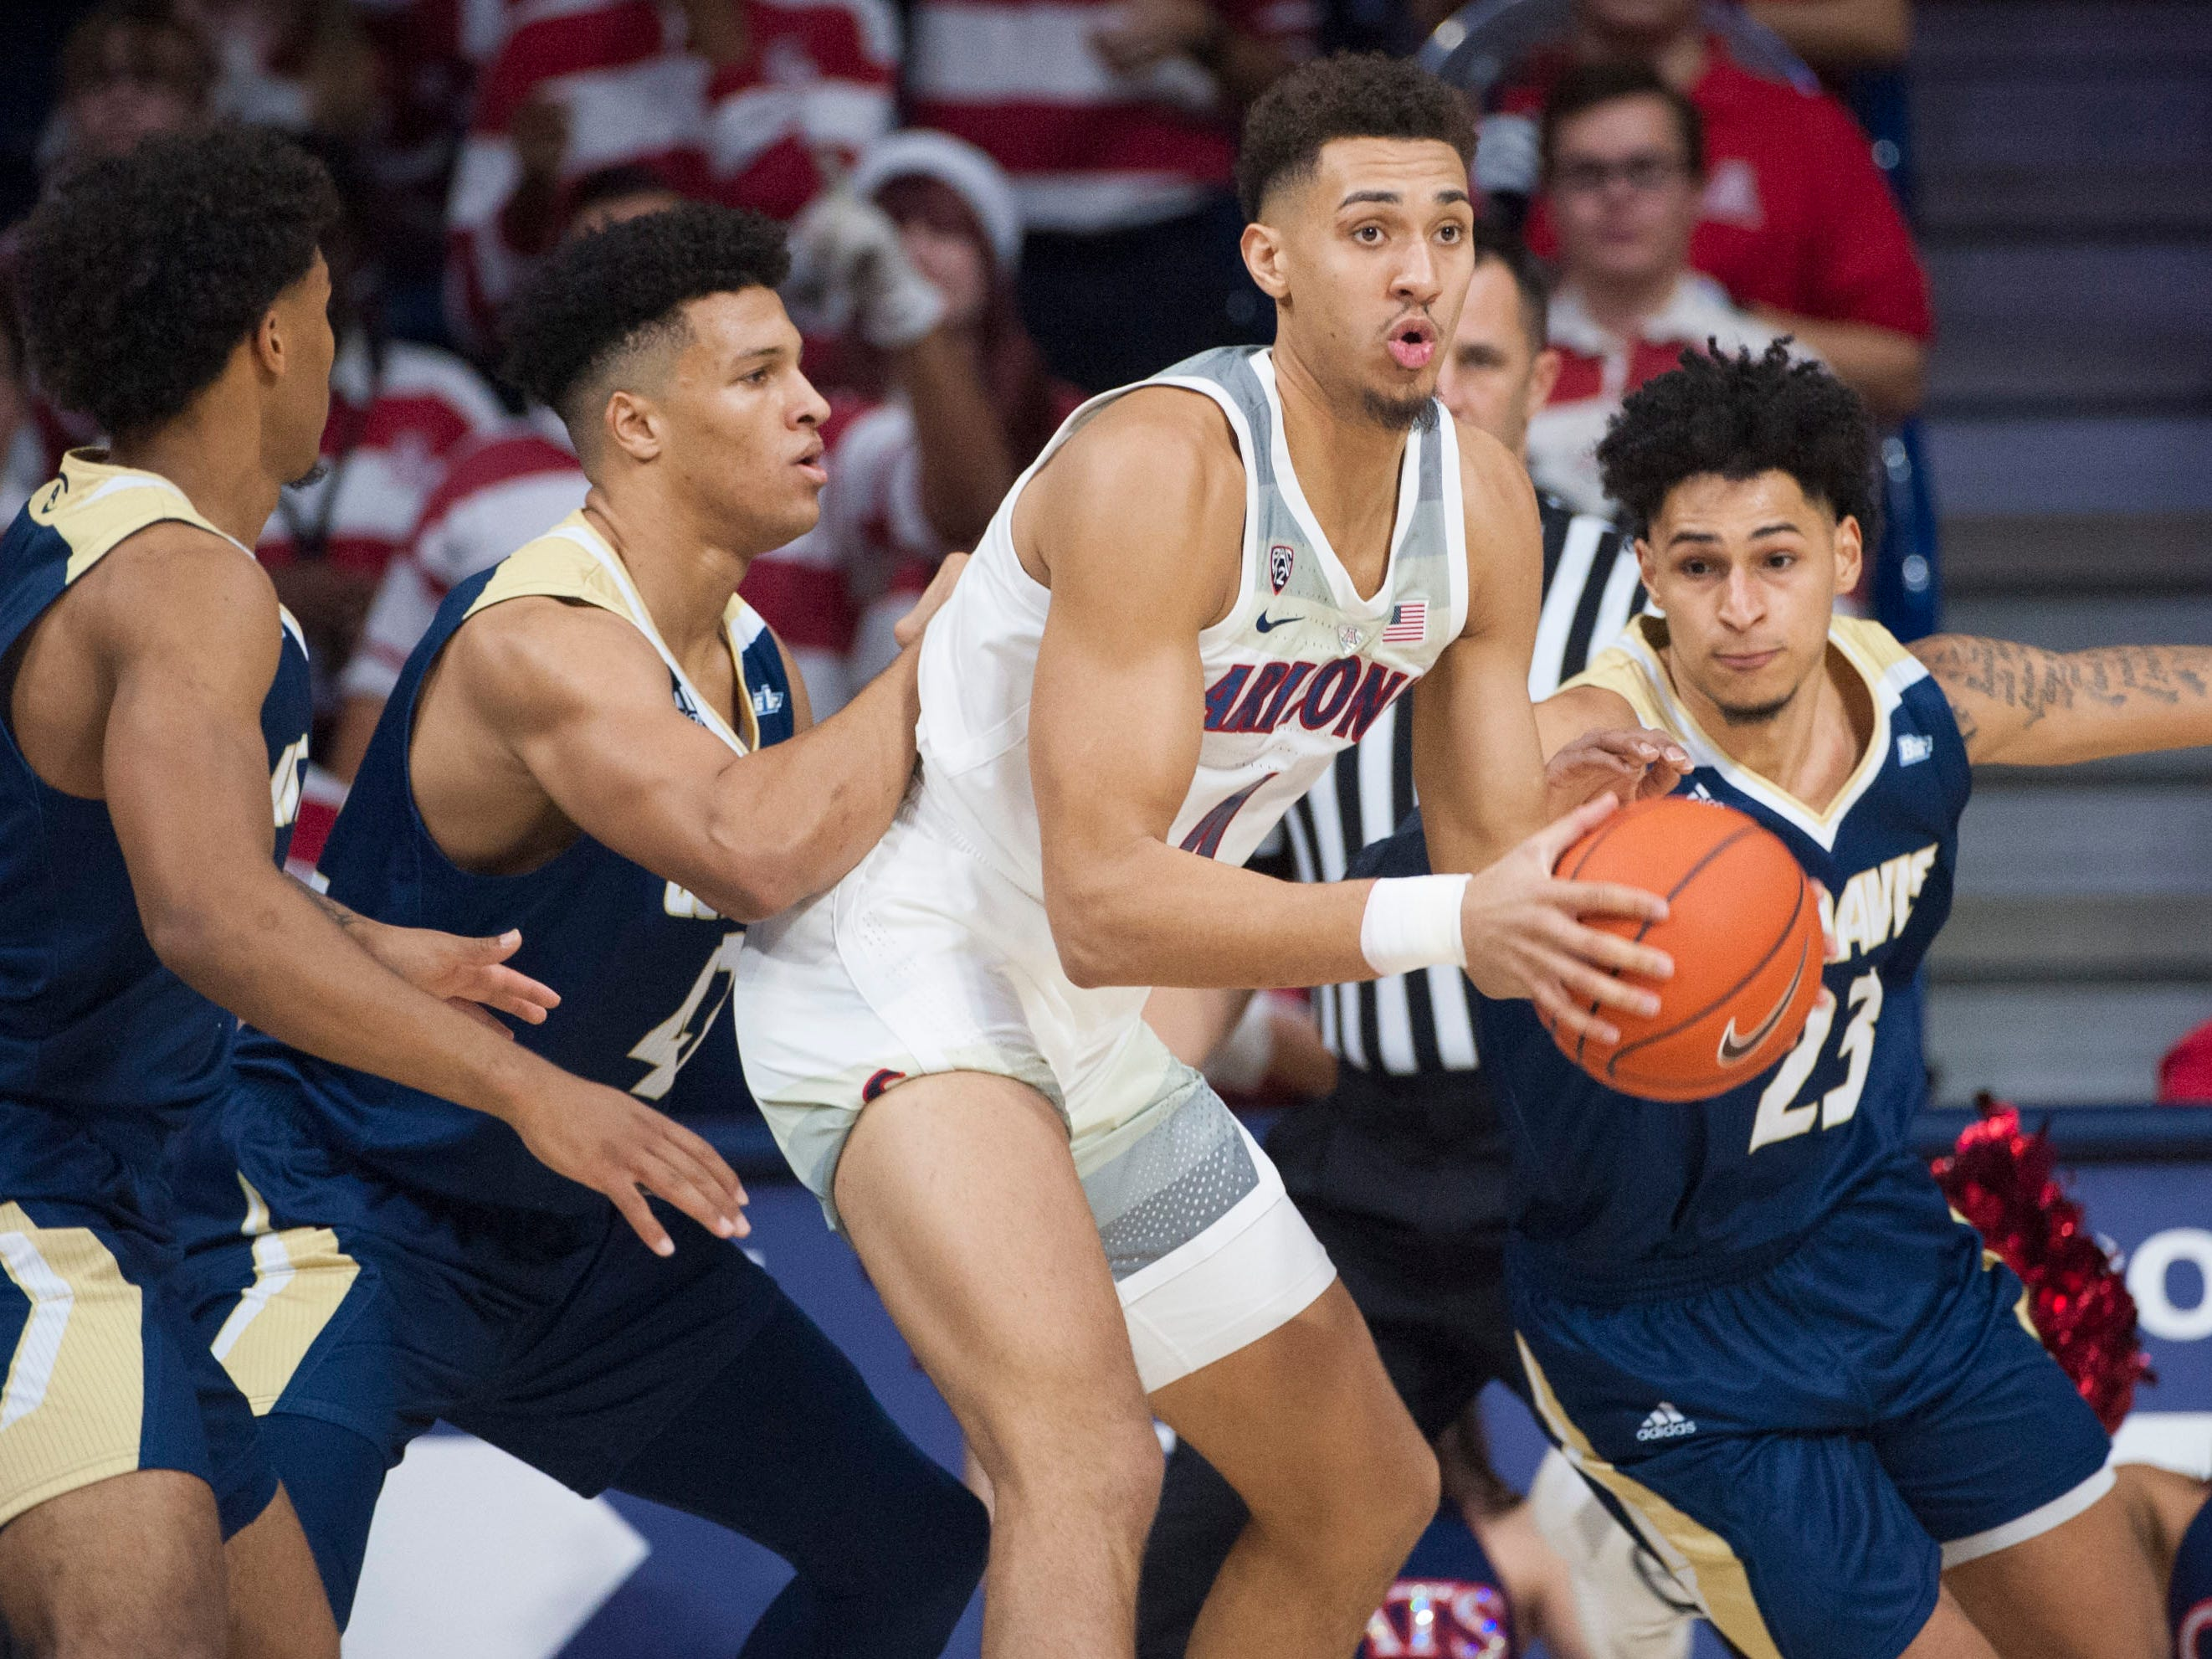 Dec 22, 2018; Tucson, AZ, USA; Arizona Wildcats center Chase Jeter (4) looks to pass the ball as UC Davis Aggies guard Rogers Printup (23) (right) guard Damion Squire (1) (left) and forward Jonah Underwood (42) defend during the first half at McKale Center. Mandatory Credit: Casey Sapio-USA TODAY Sports